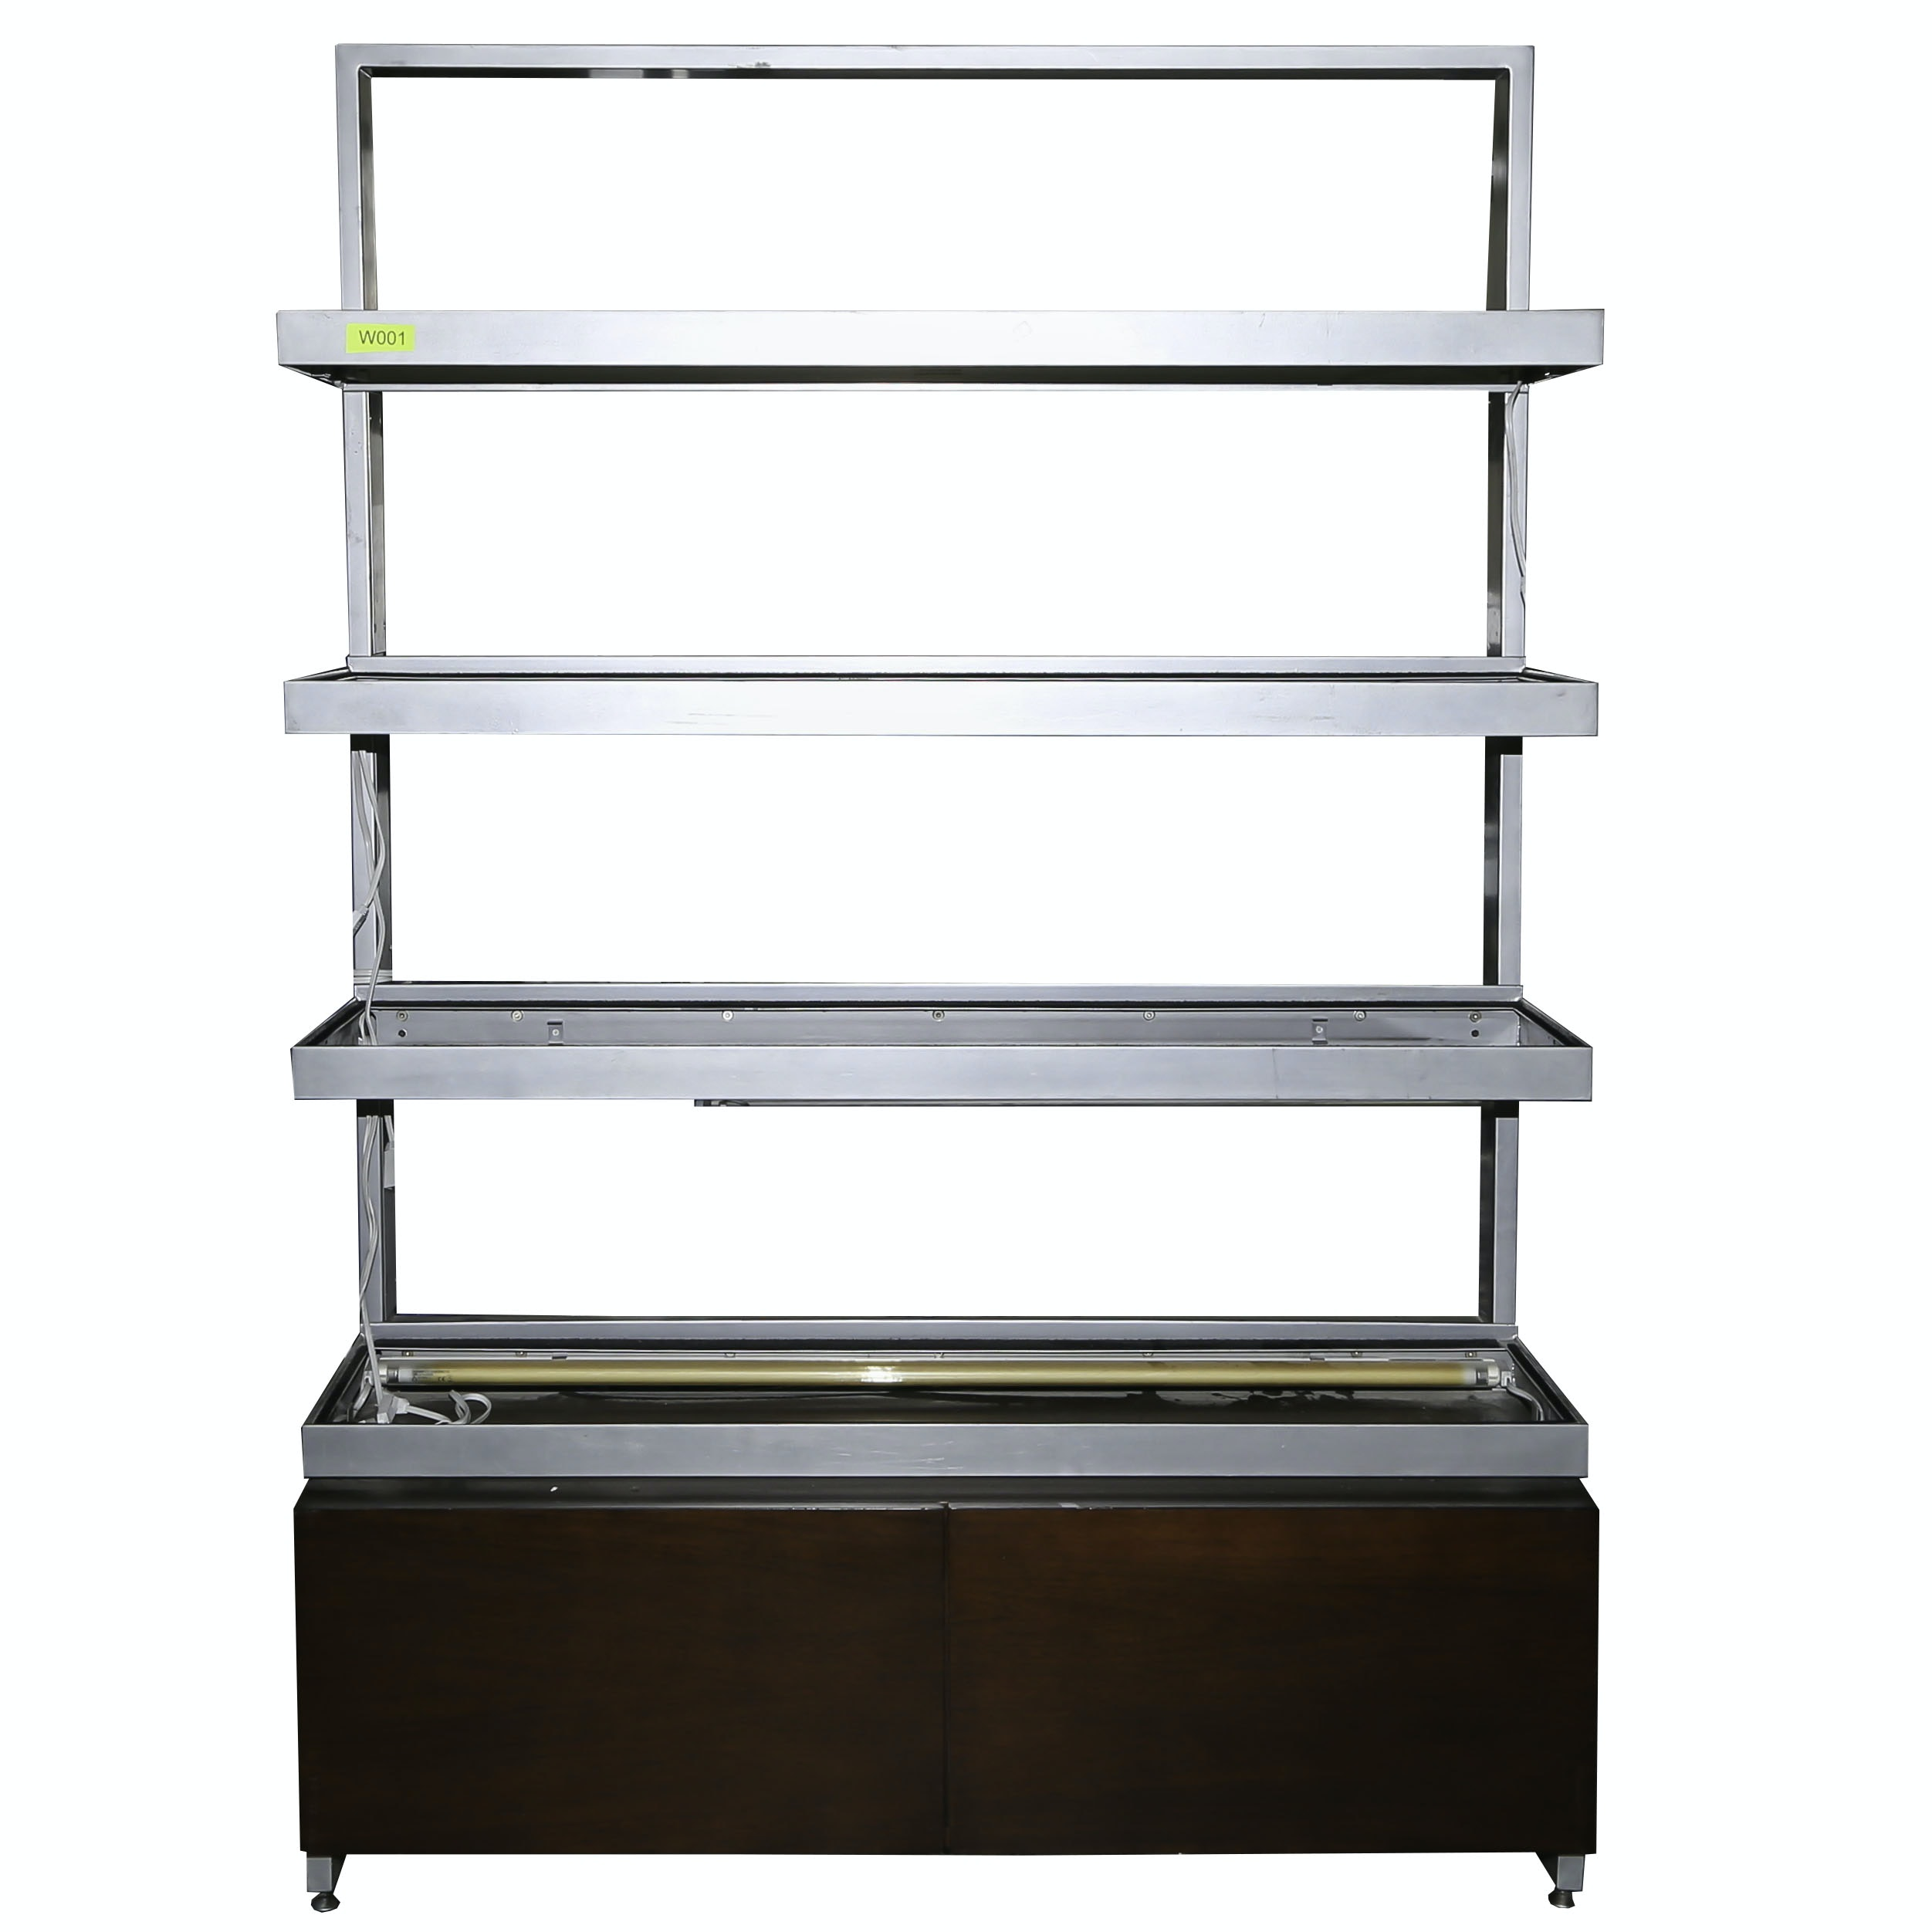 Lighted Commercial Display Shelf with Drawer Storage, 21st Century